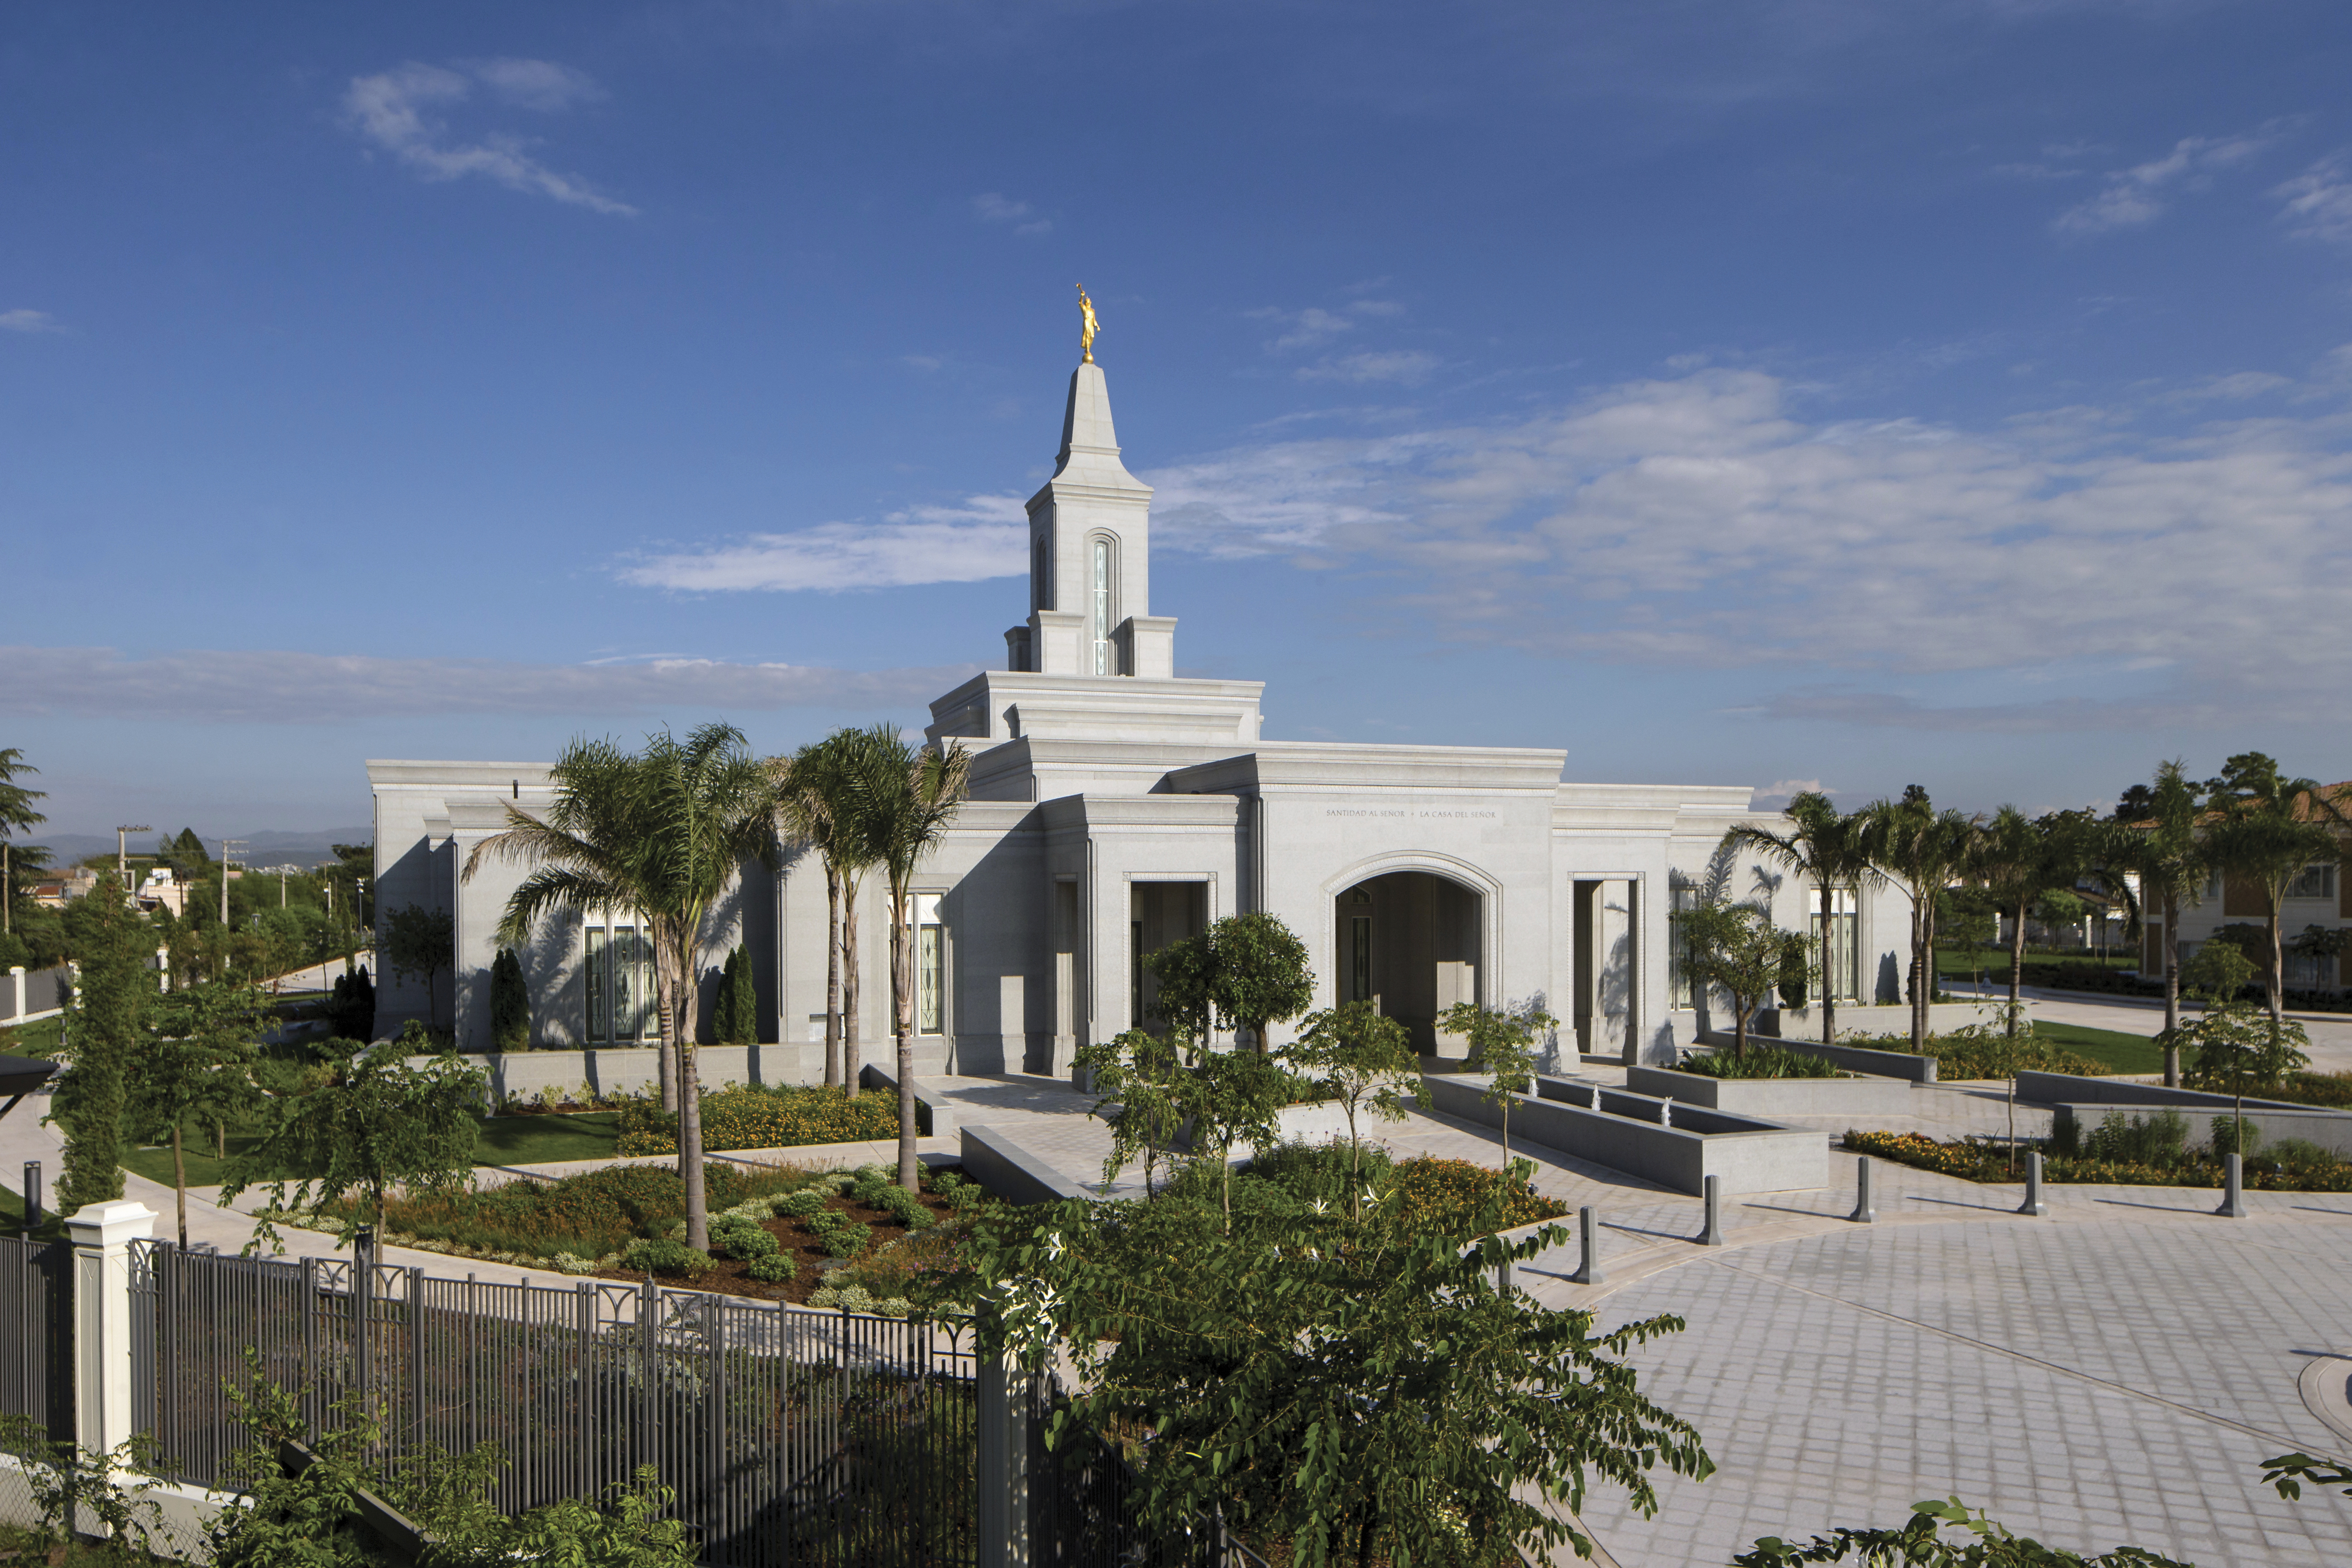 A front view of the Córdoba Argentina Temple and grounds.